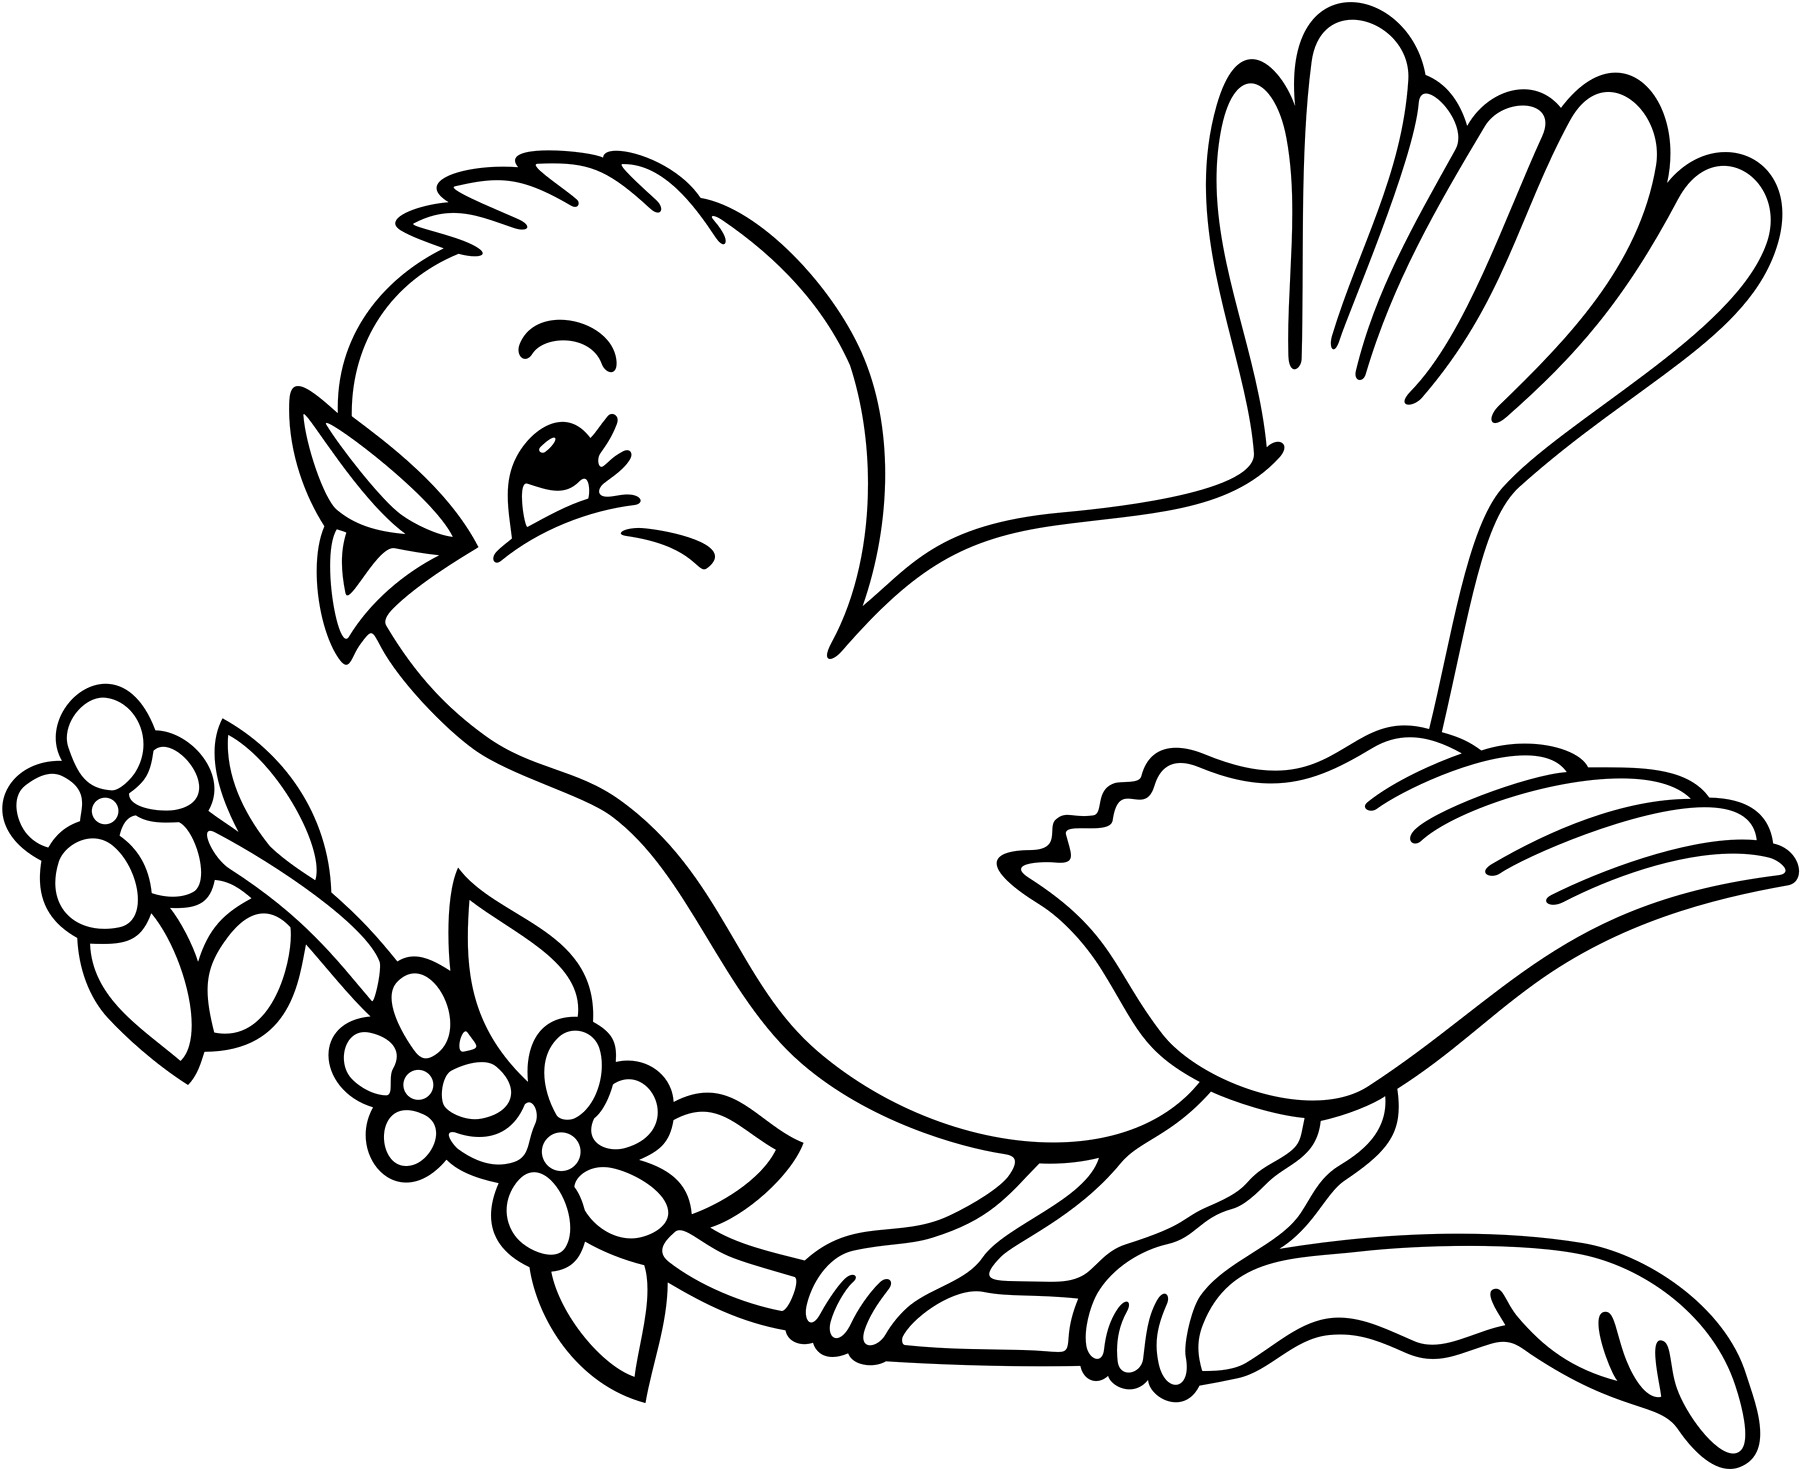 1802x1471 Impressive Bird Coloring Pictures Cool Book Ga